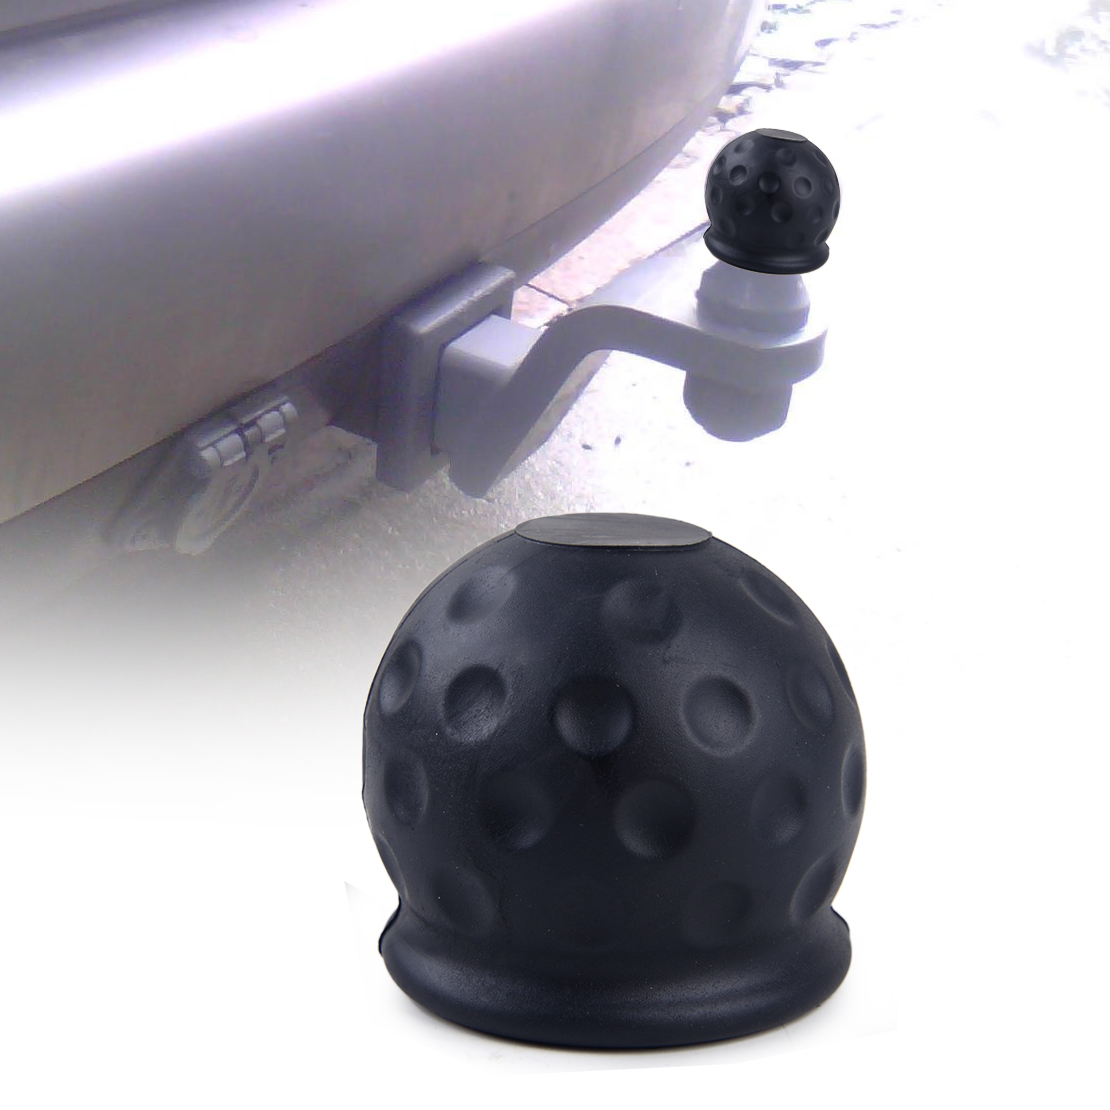 DWCX Rubber Black 50mm Tow Ball Towball Protector Cover Cap Hitch Caravan Trailer ...